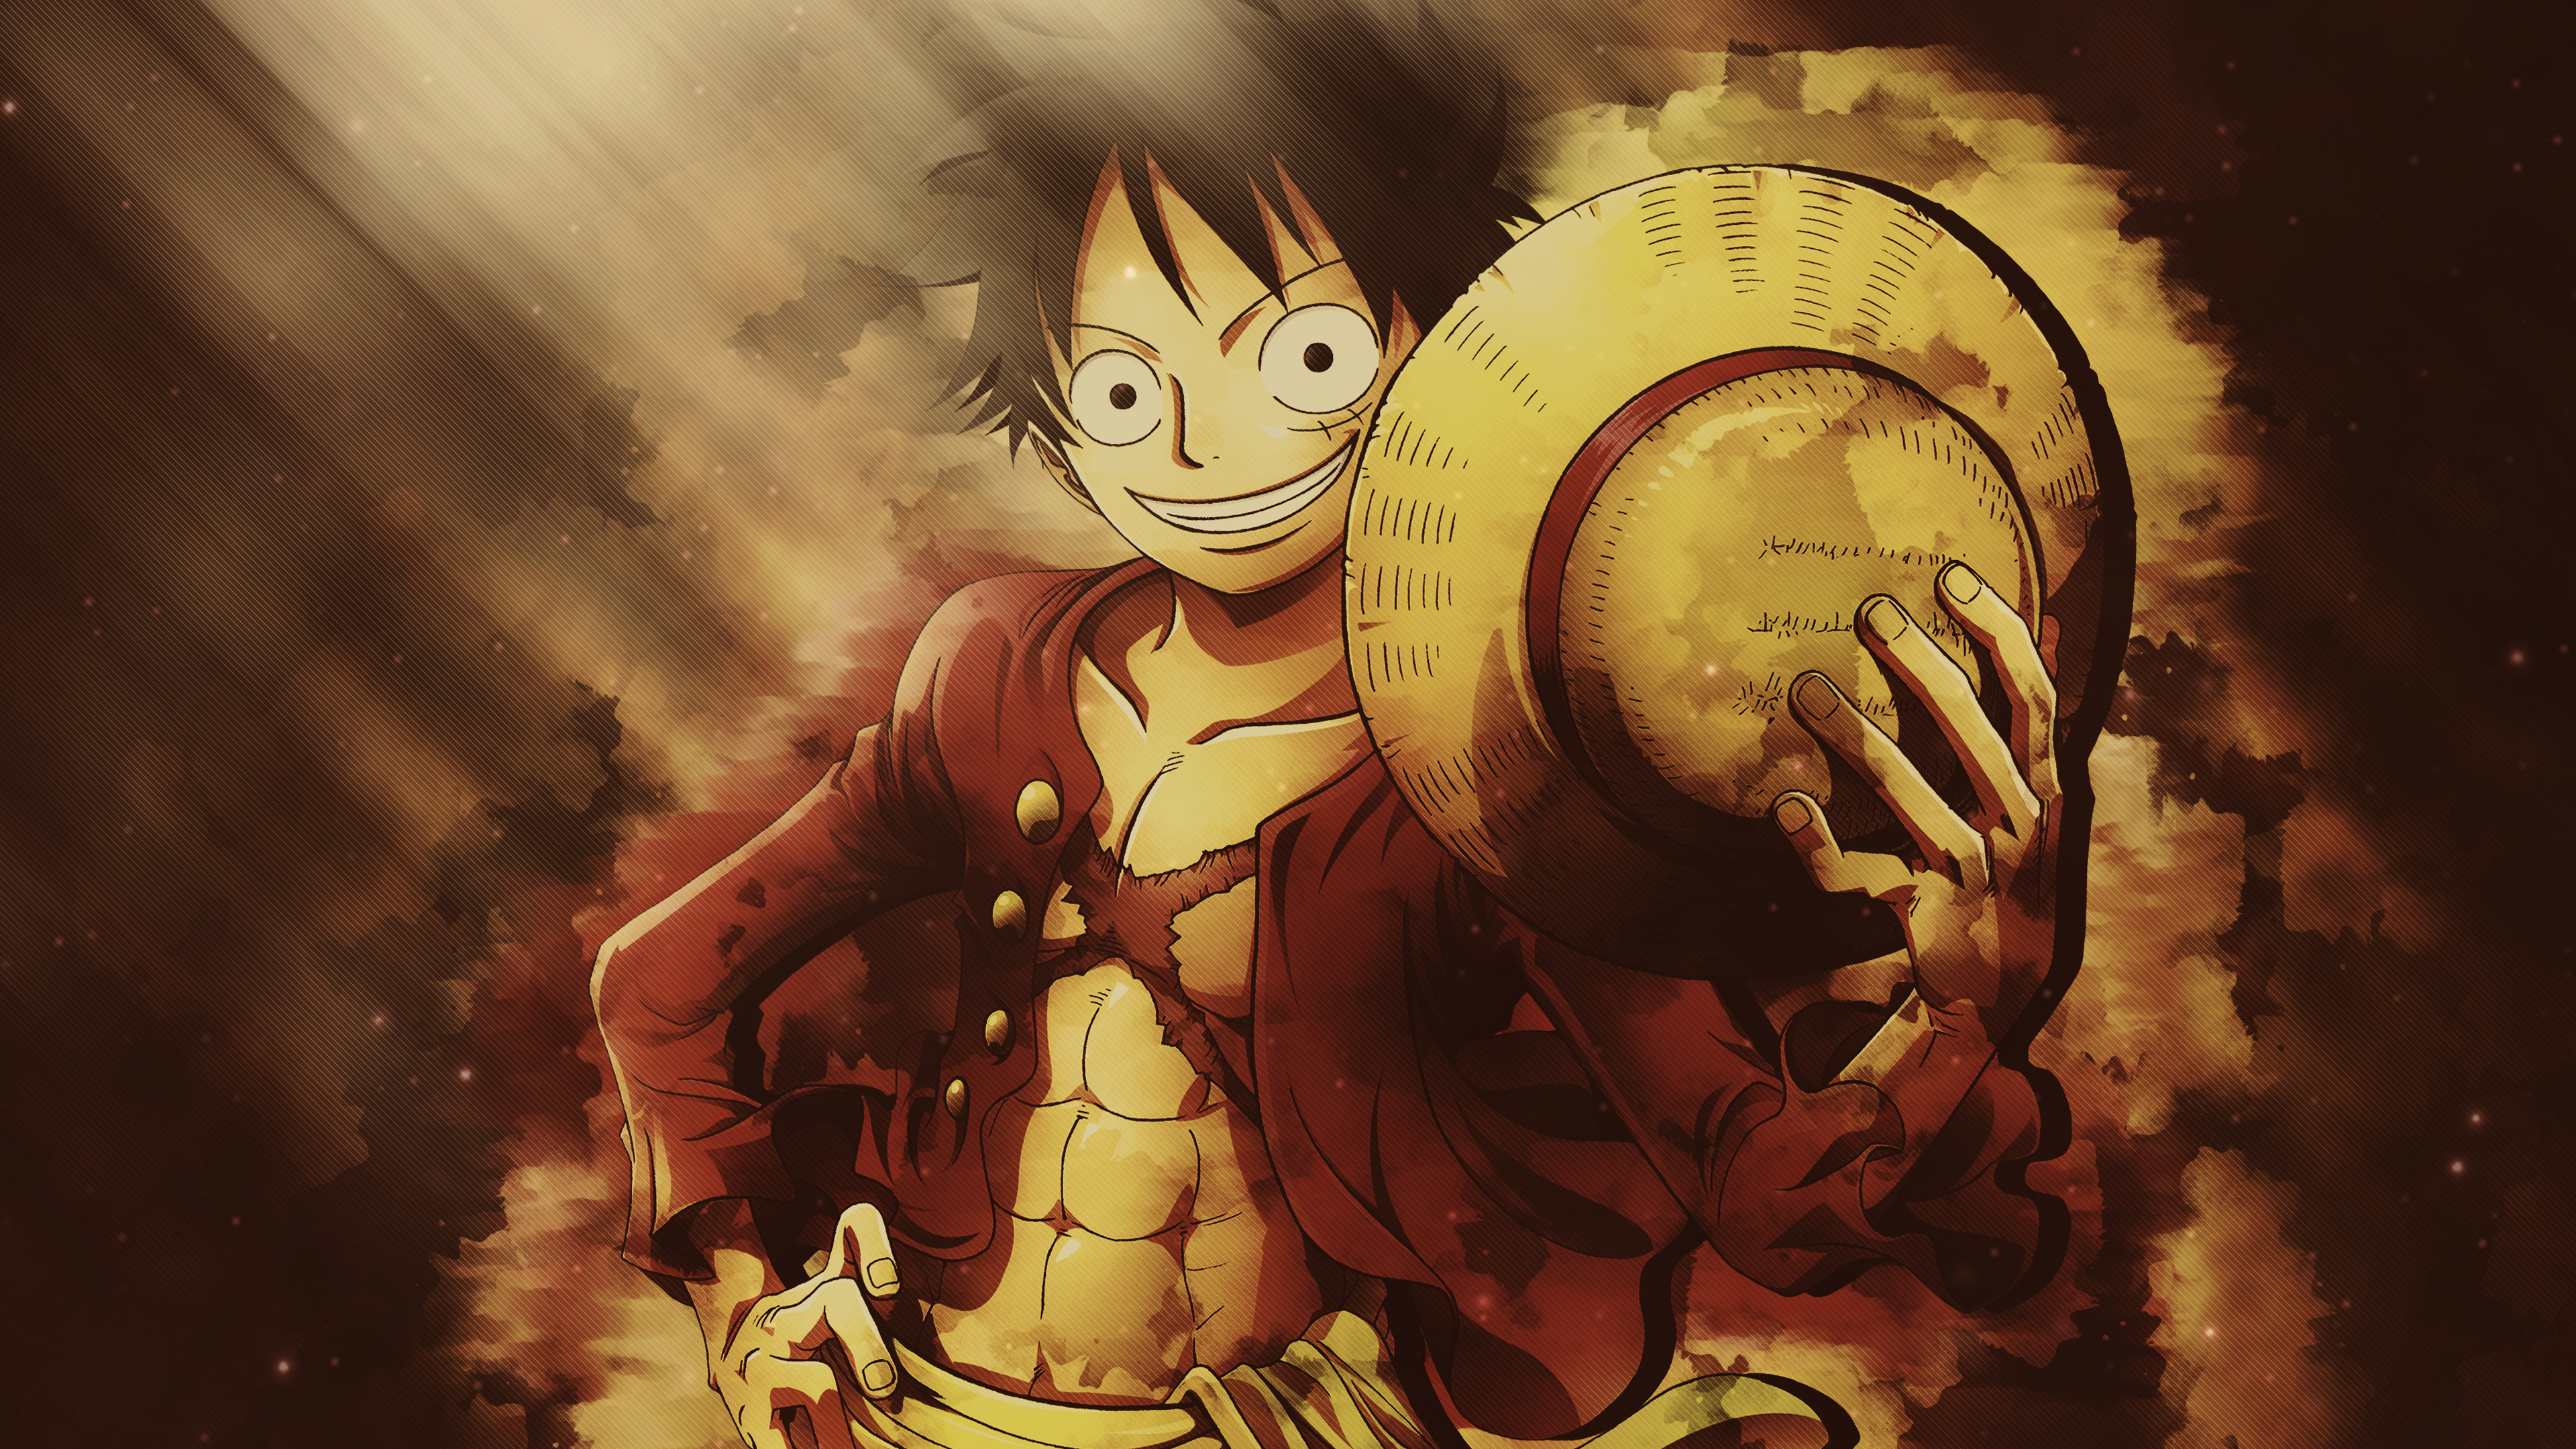 Fondos de pantalla Anime Monkey D. Luffy de One Piece